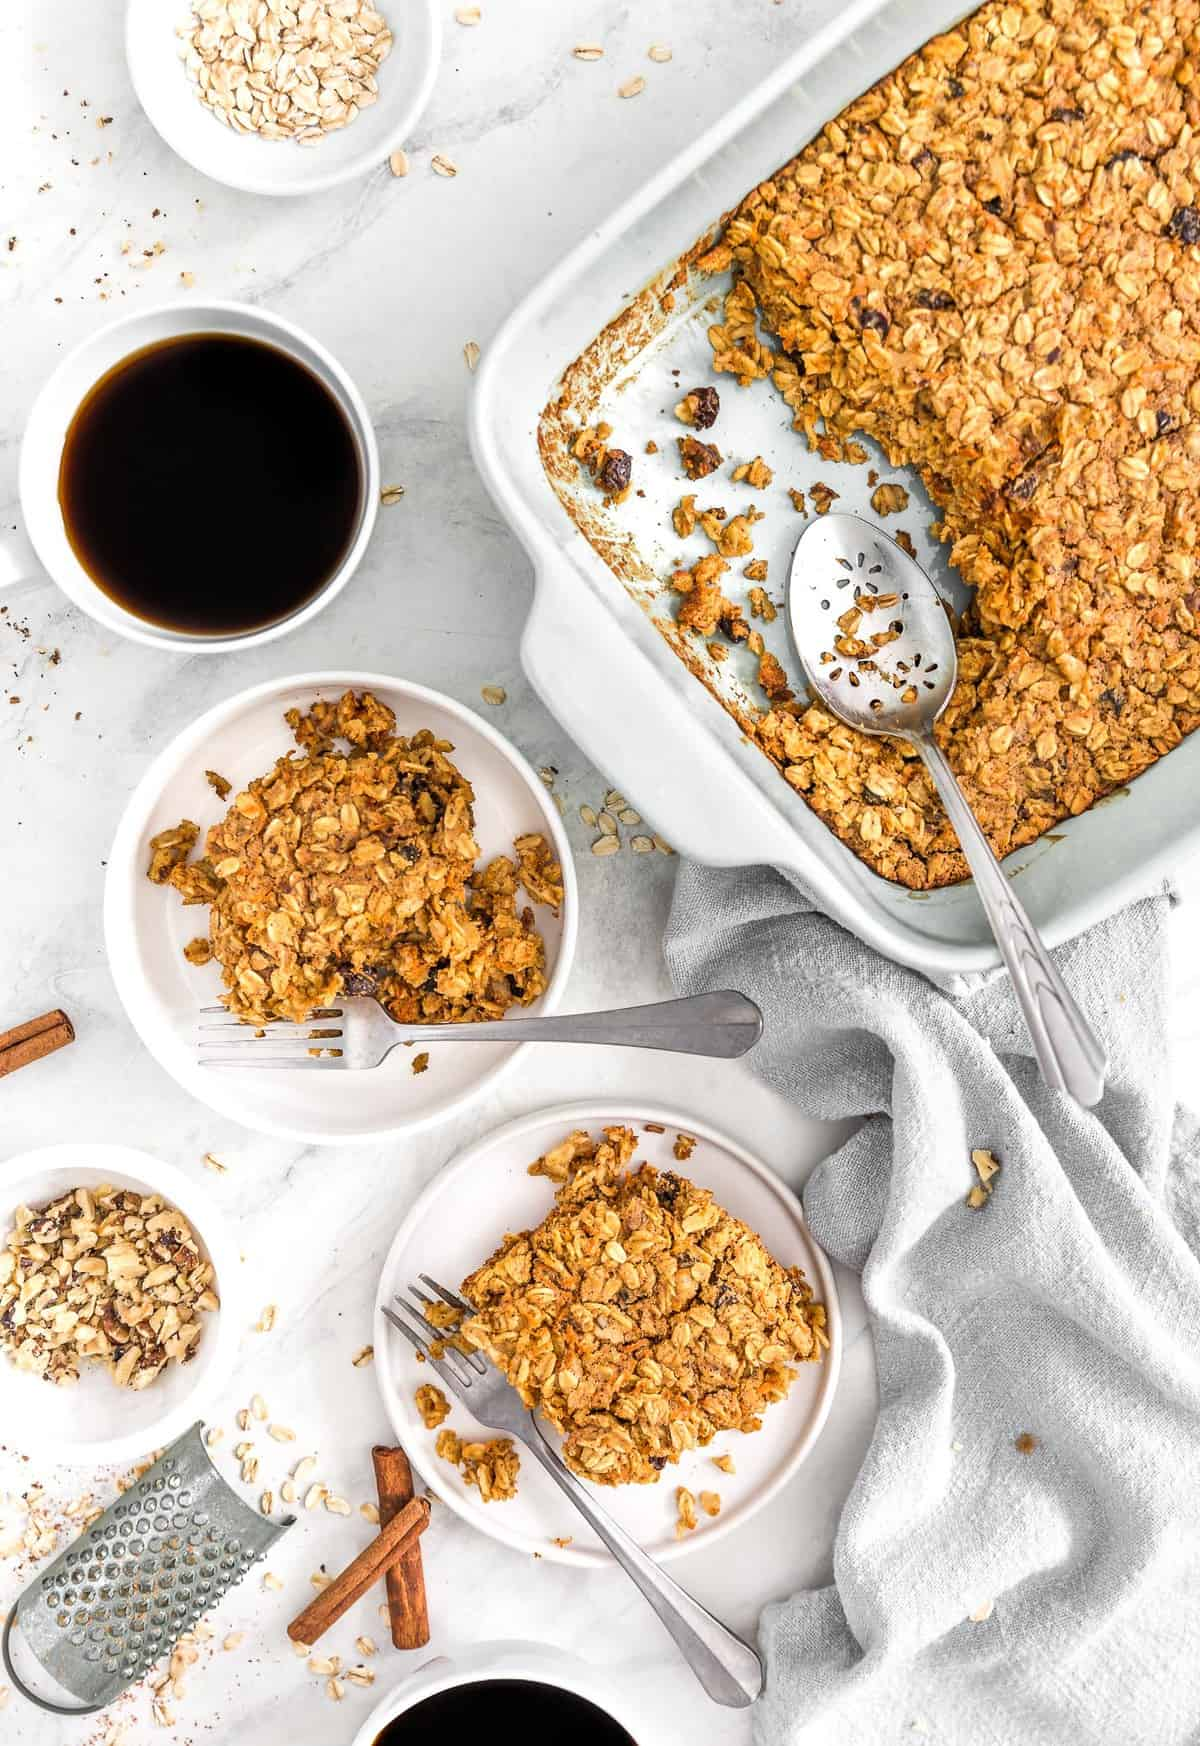 Carrot Cake Oatmeal Breakfast Bake Monkey And Me Kitchen Adventures